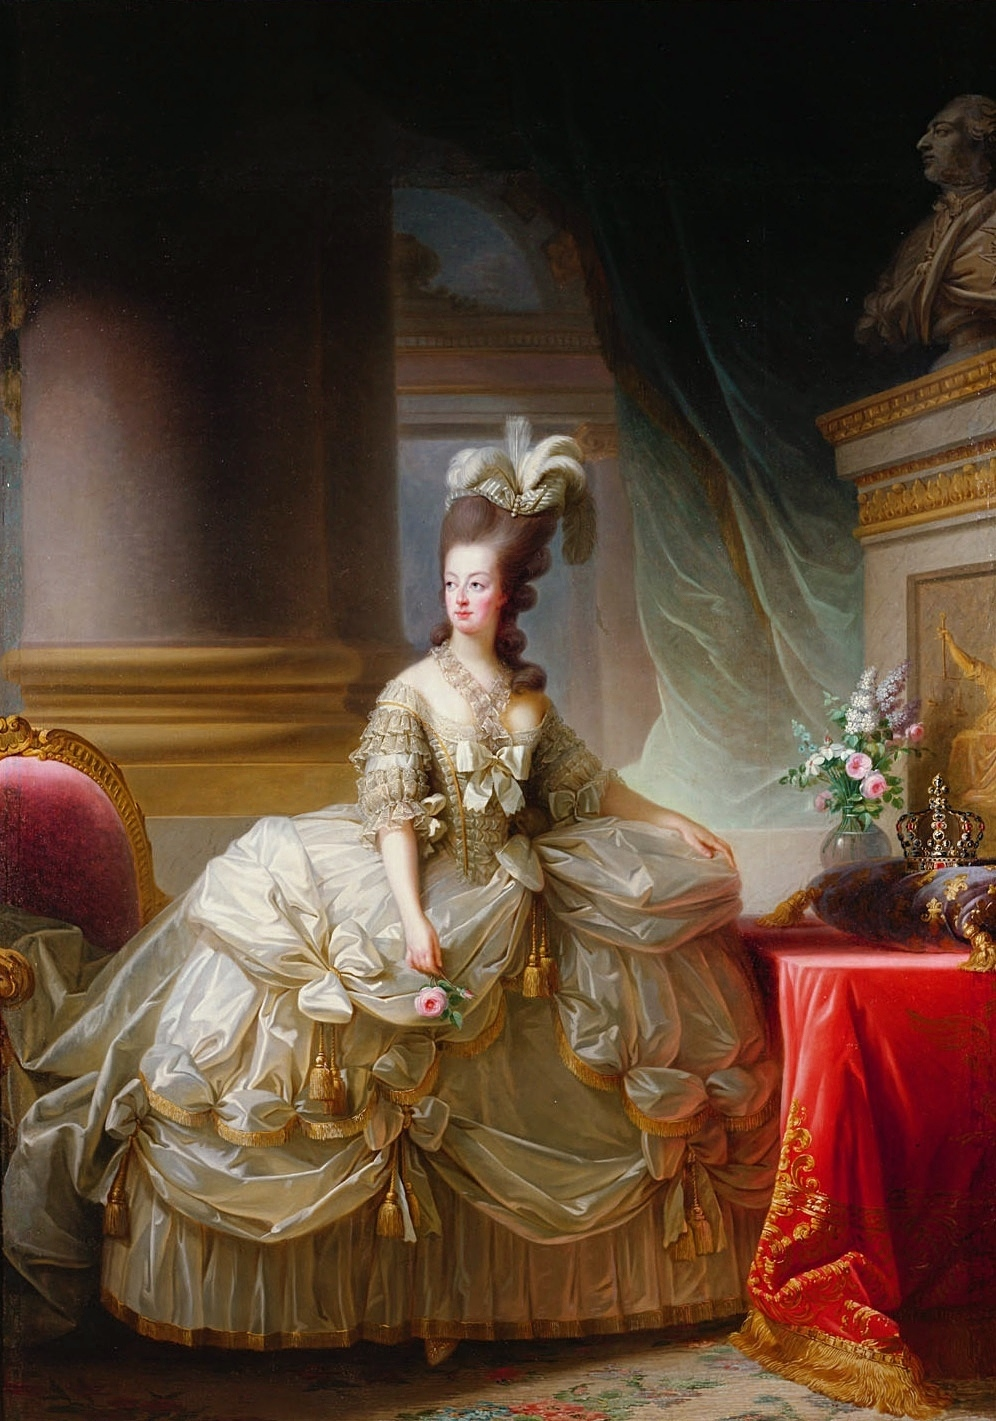 Élisabeth Vigée Le Brun, 'Marie Antoinette in Court Dress', 1778, oil on canvas